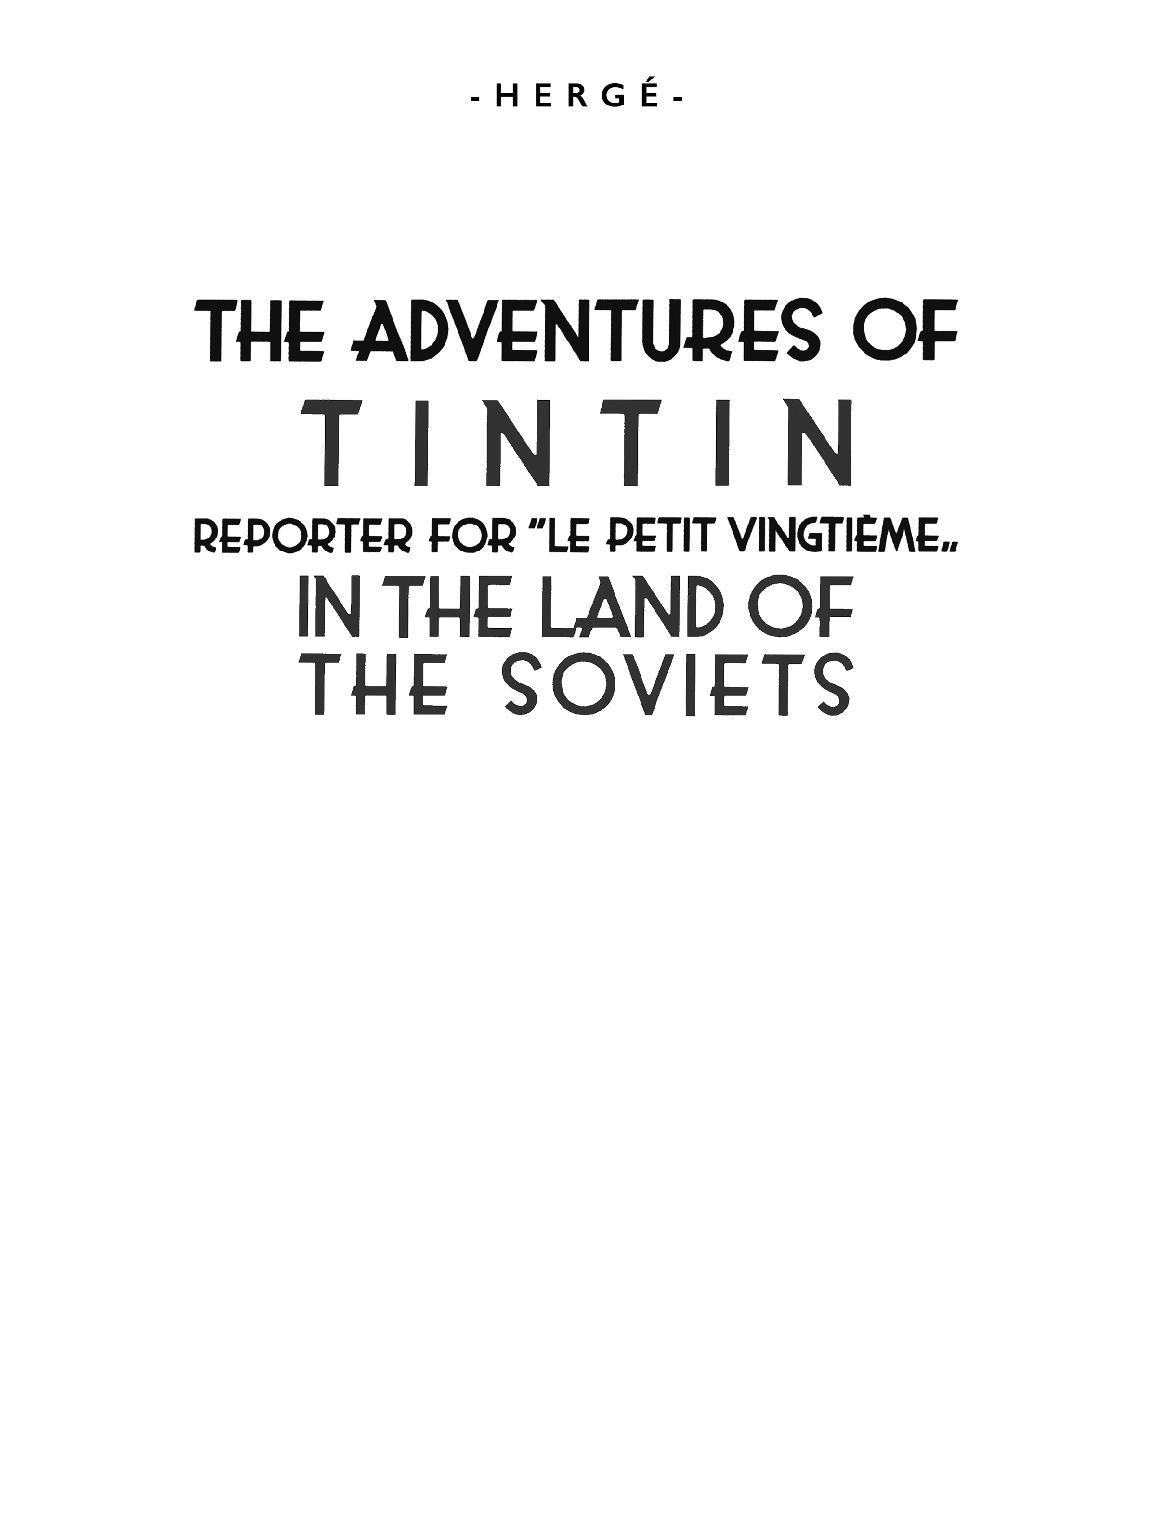 Tintin in the Land of the Soviets - Title page